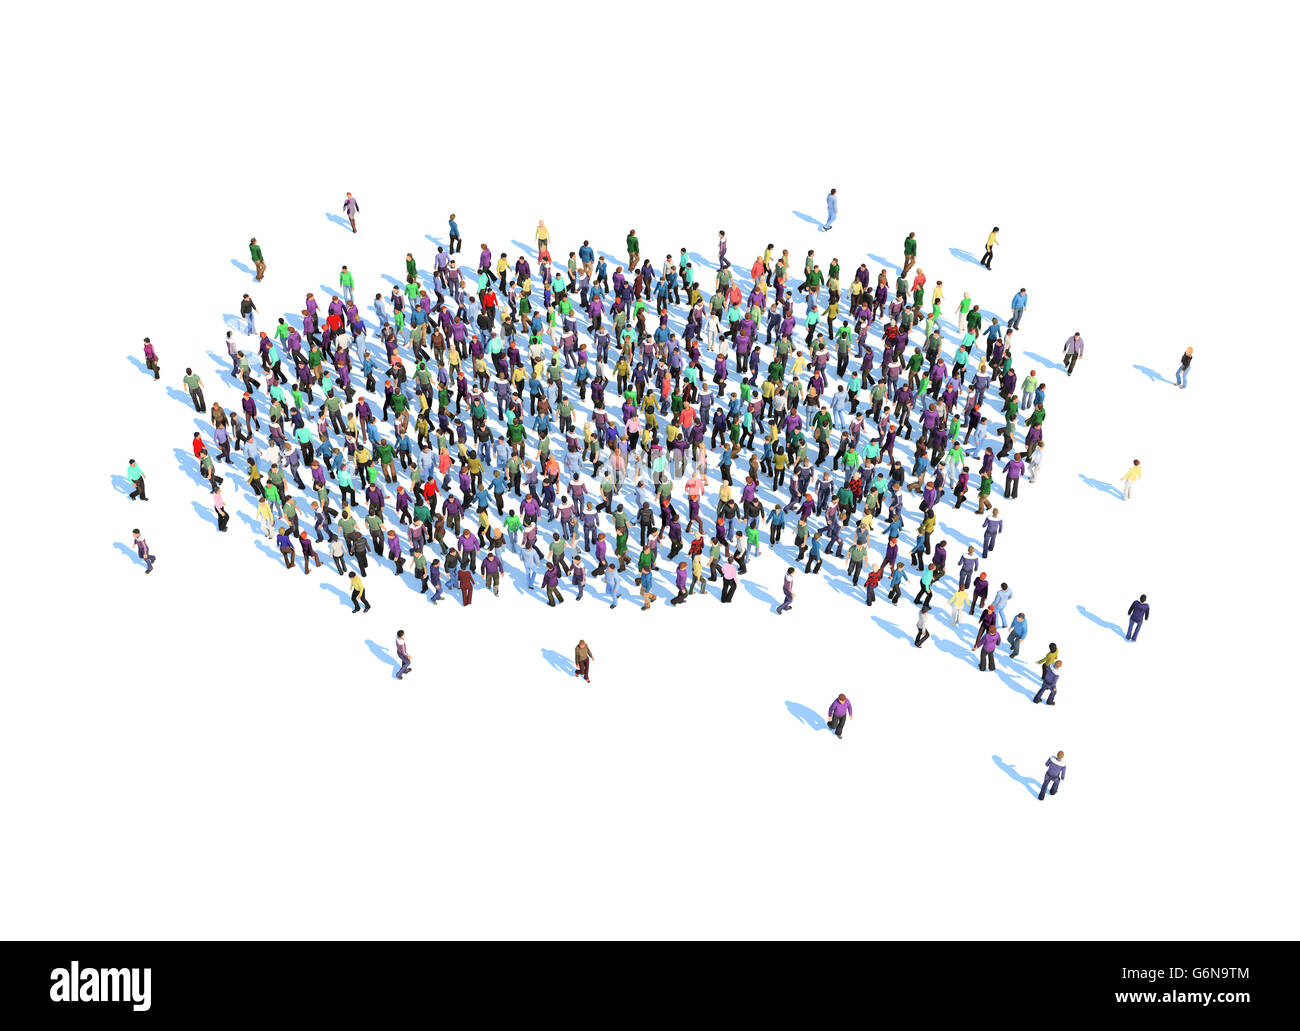 Large group of people forming a speech bubble symbol - 3D illustration - Stock Image